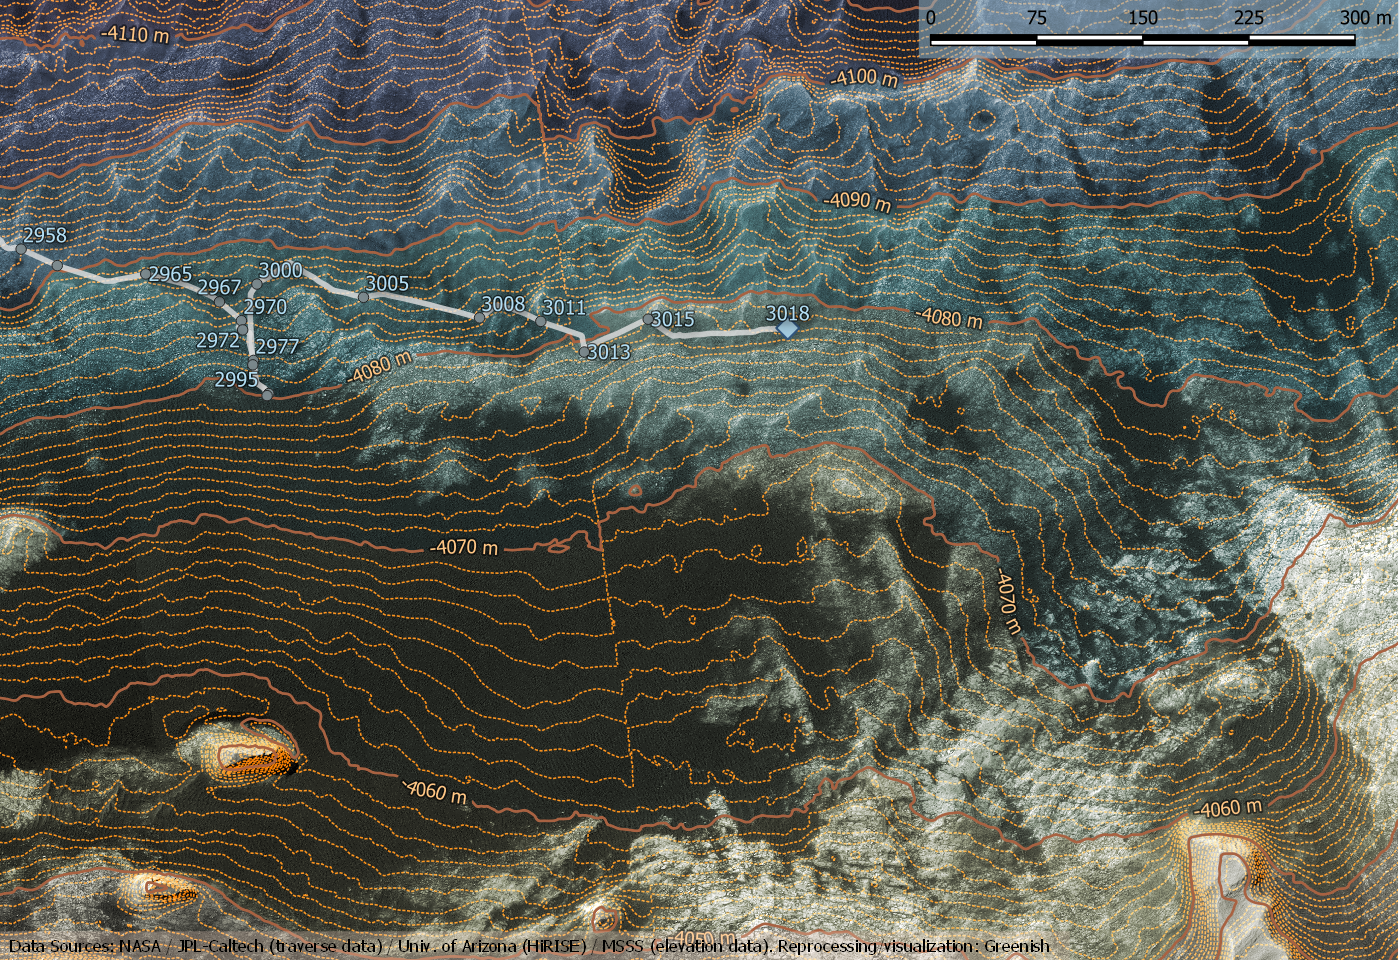 60194f0bd8414_3018Contour_Map0102Verdatre.png.cb1119e8c333d3e278ee3e5dcd38156c.png